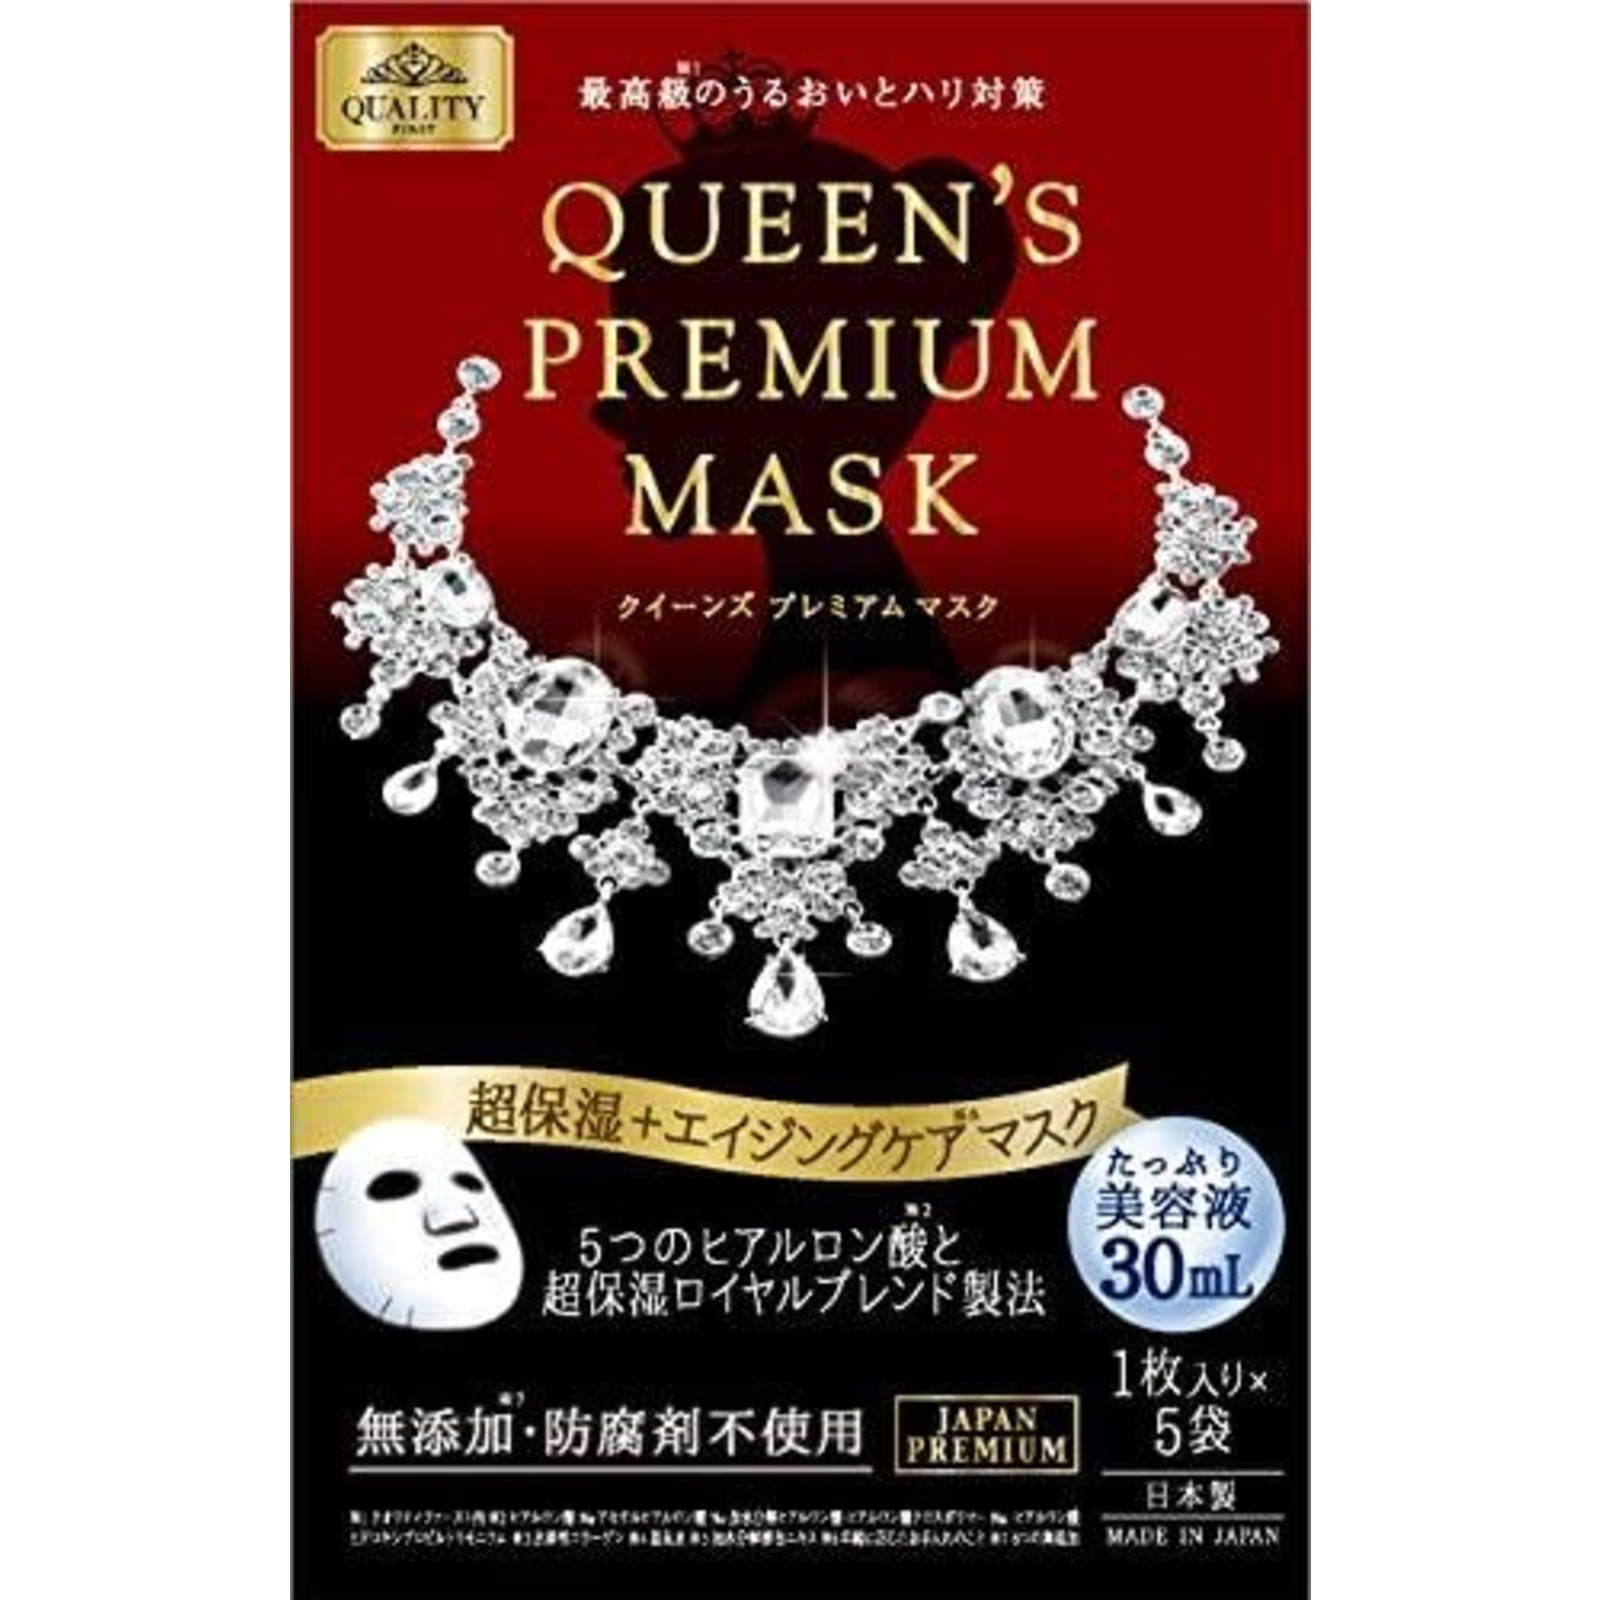 Quality 1st Quality 1st Queens Premium Mask Moisture 5s